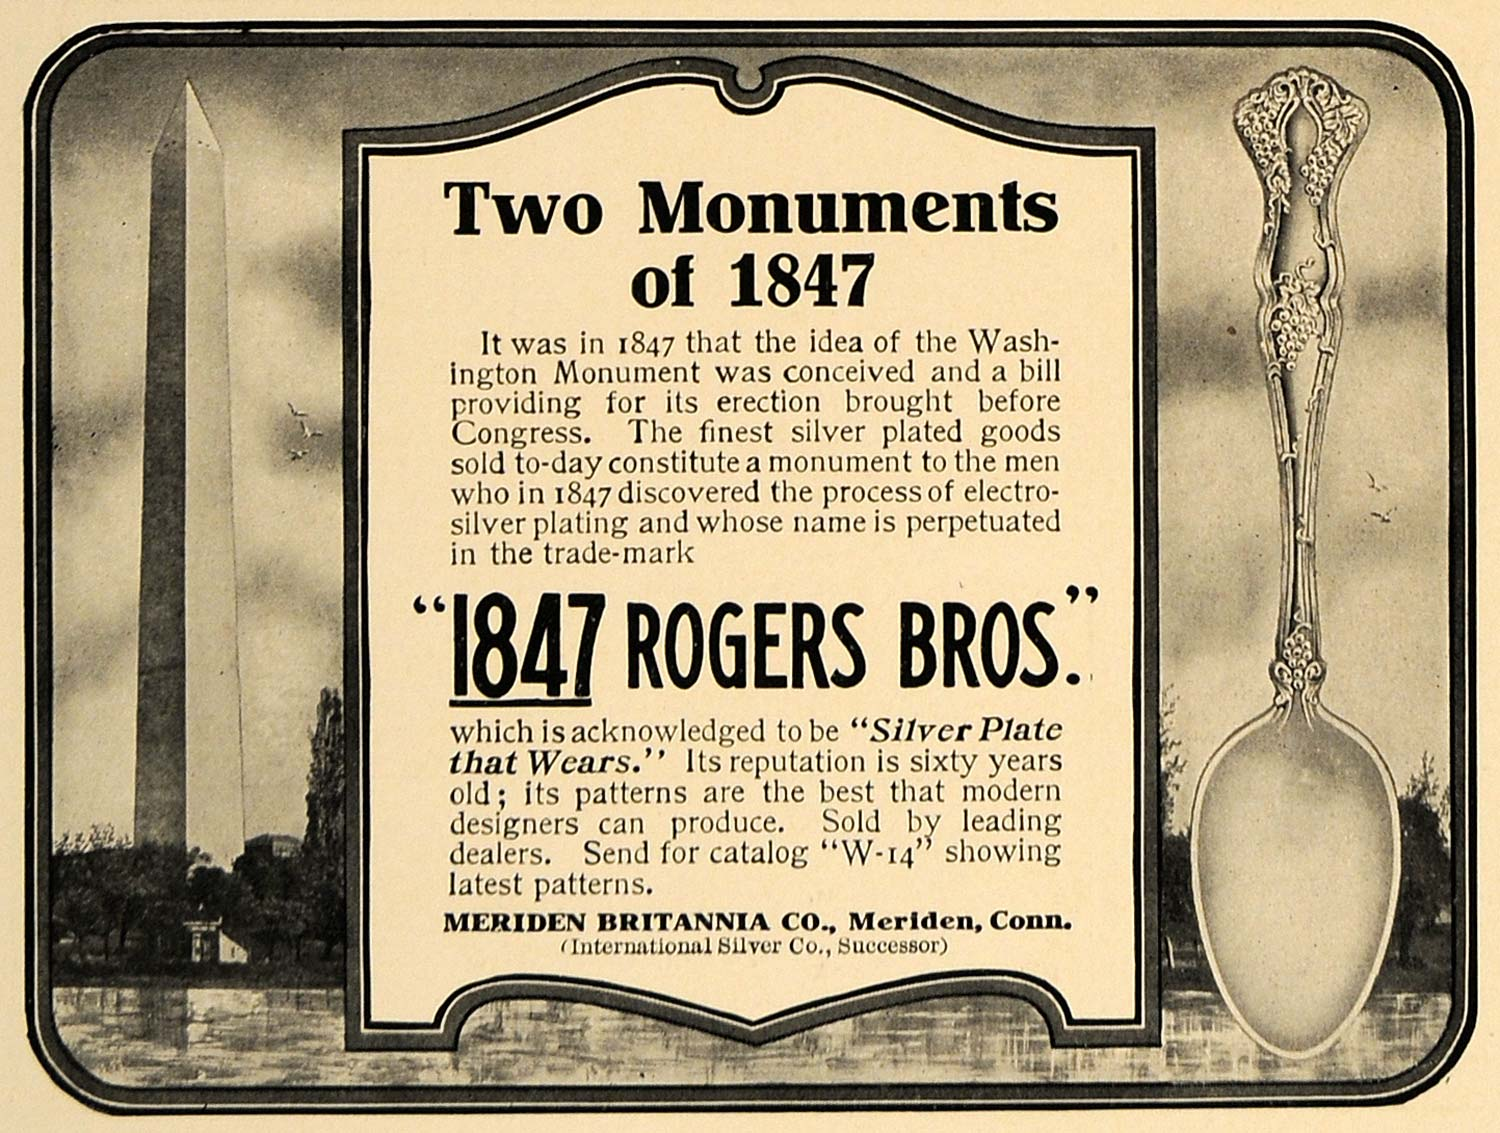 1906 Ad 1847 Rogers Bros Silver Spoon Washington MON. - ORIGINAL ADVERTISING CL8